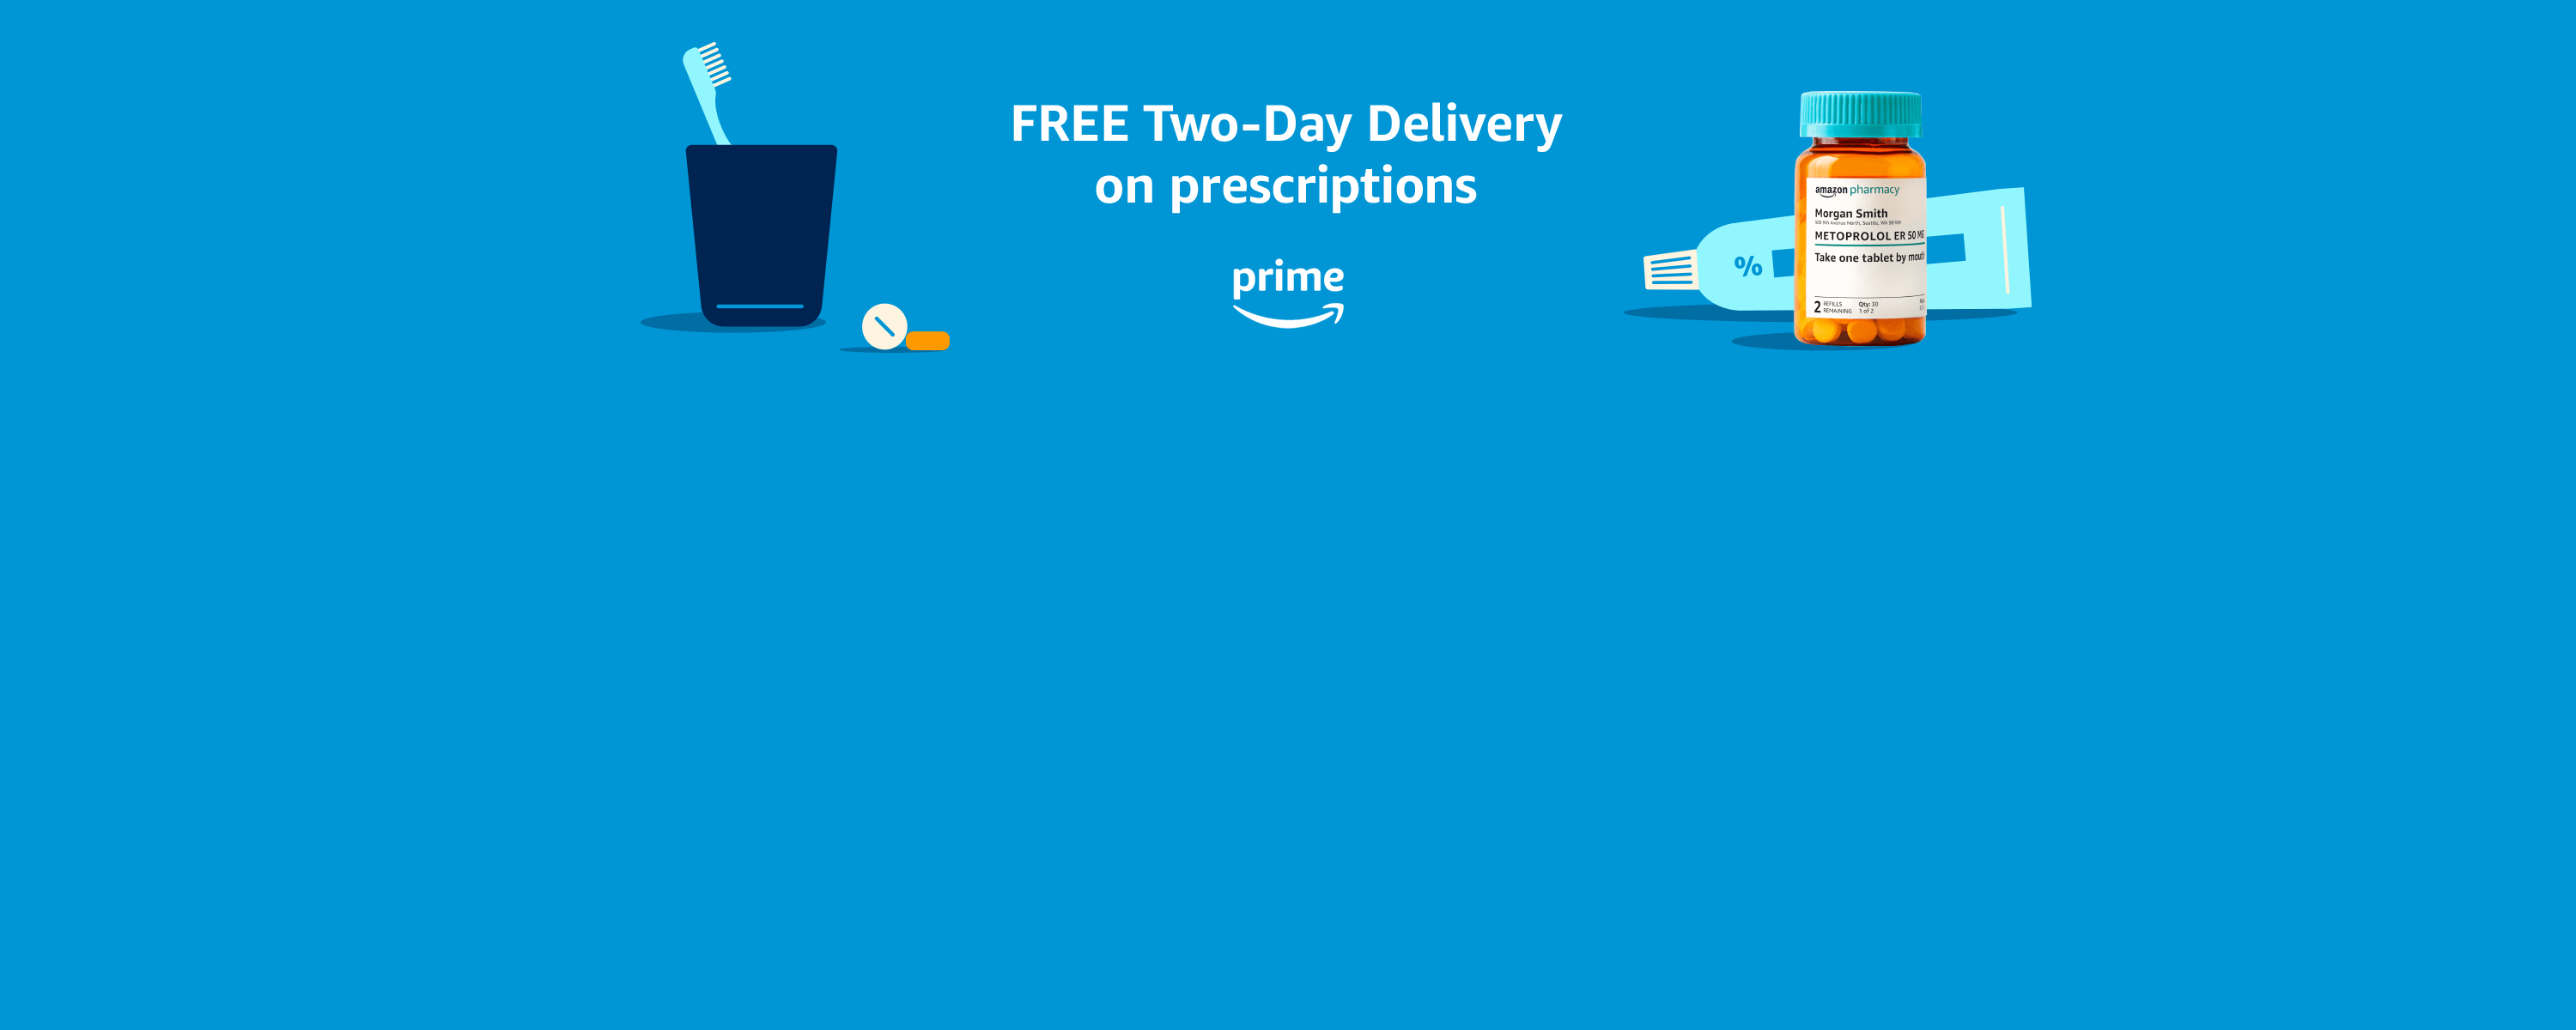 FREE Two-Day Delivery on prescriptions with Prime